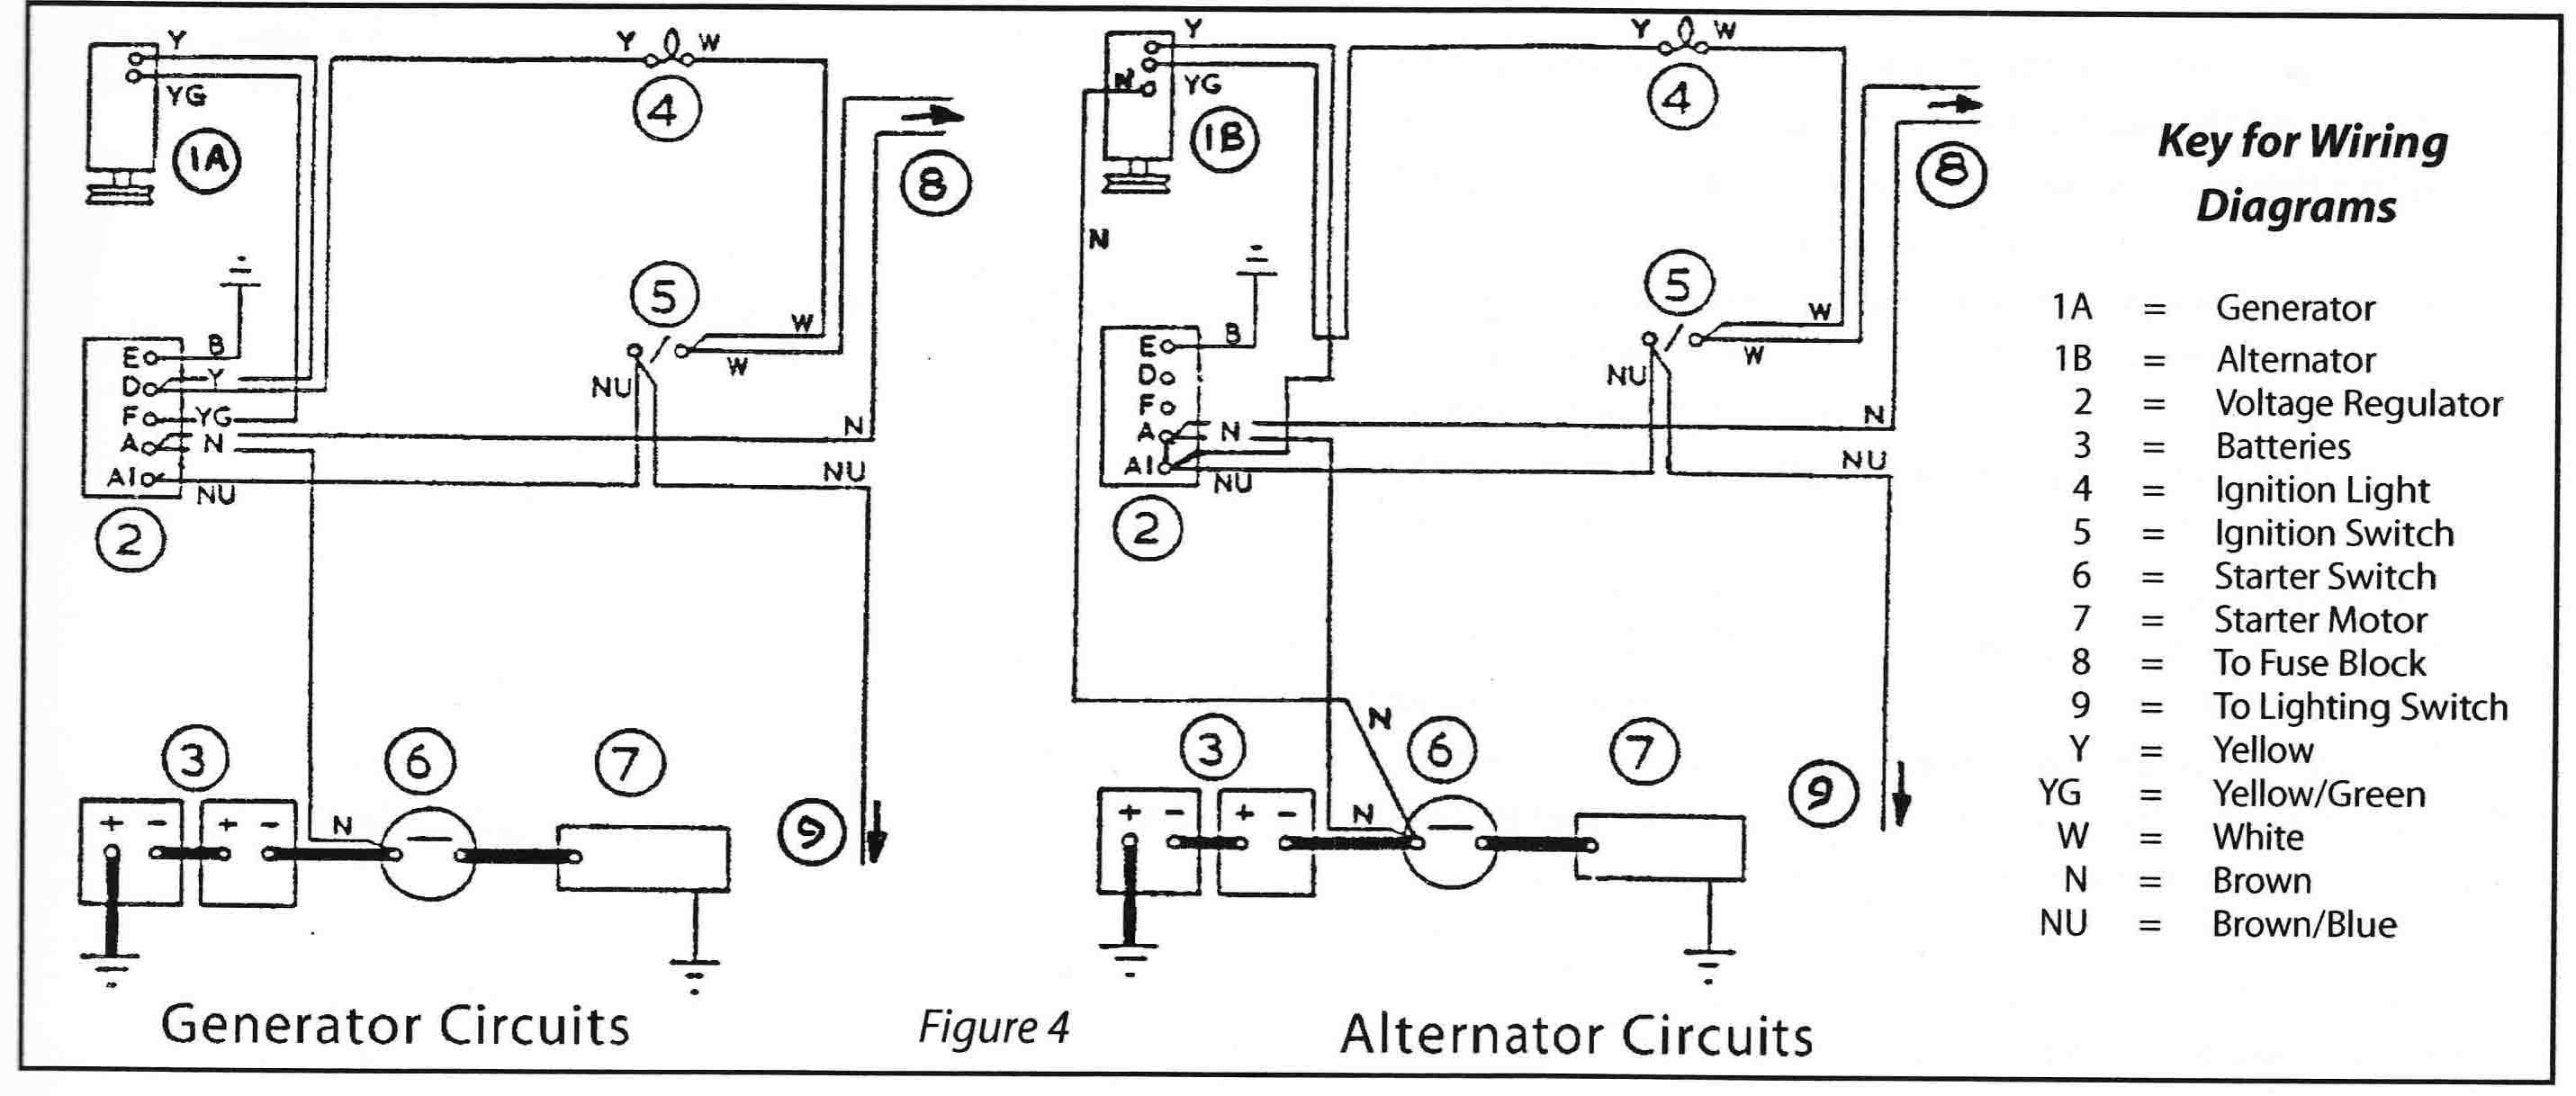 1974 mgb fuse box diagram 1974 free engine image for